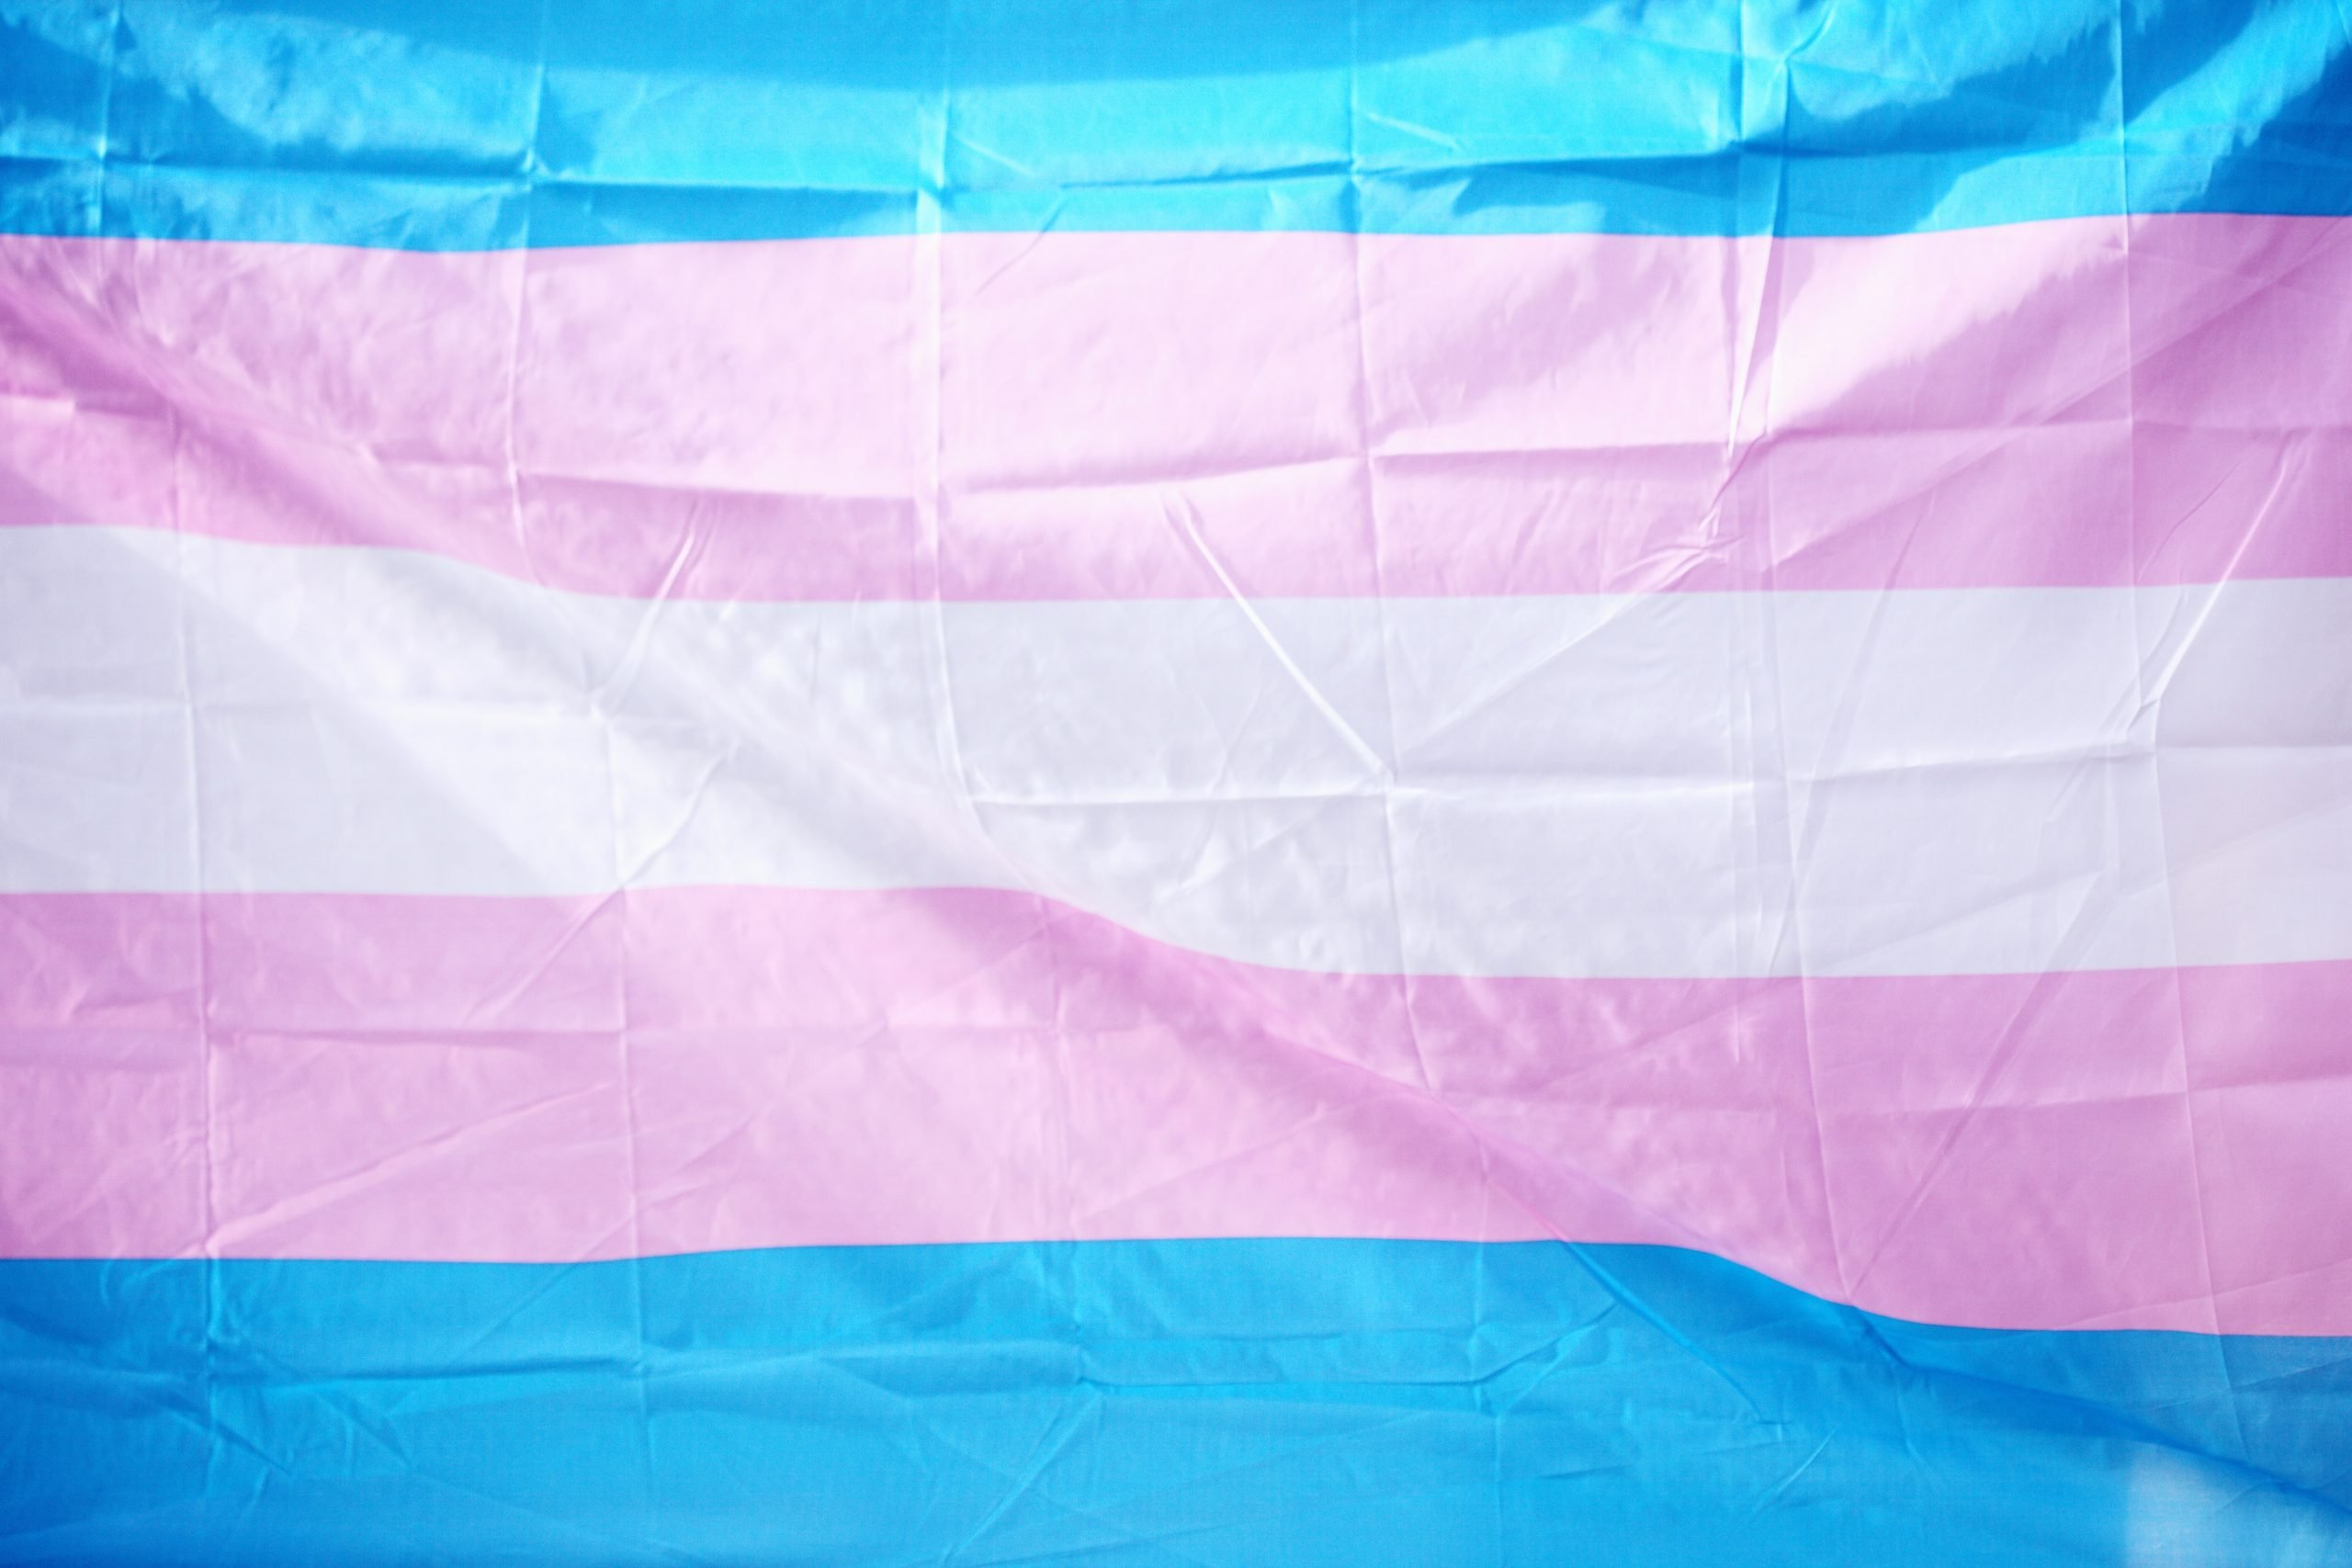 Image of pink, blue and white horizontally striped flag